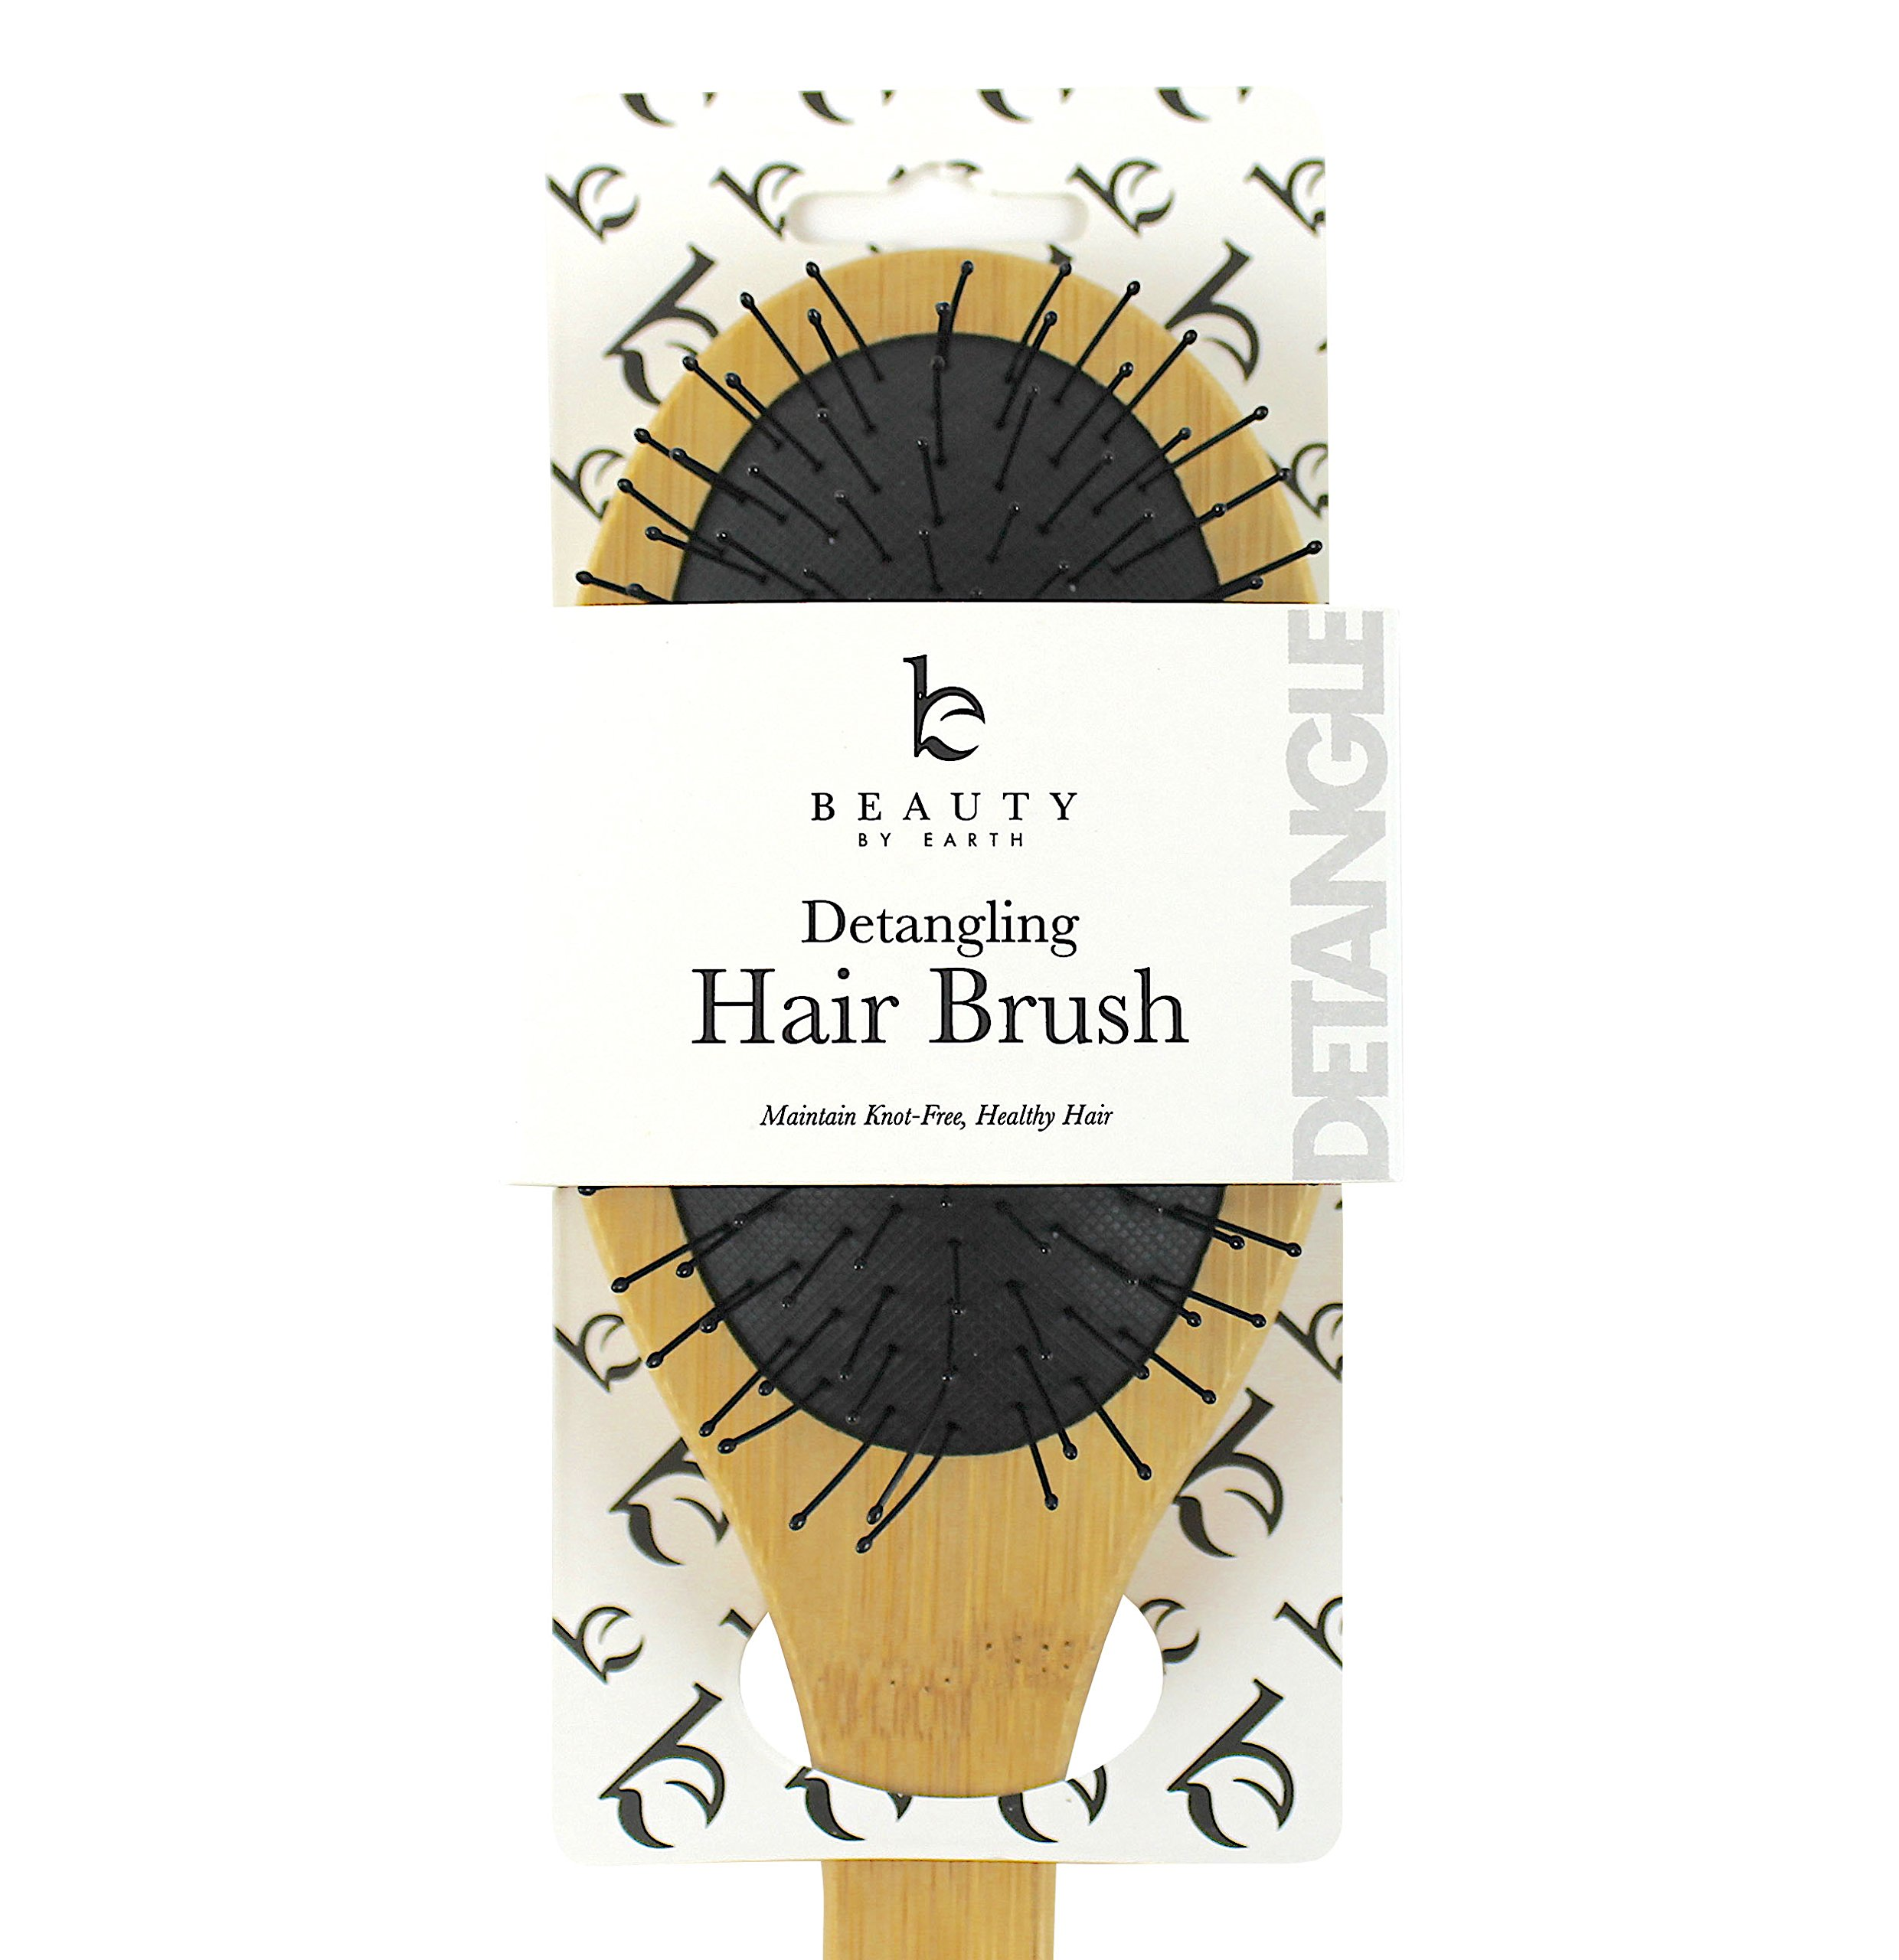 Detangling Brush; Natural Detangler Comb for All Hair Types to Detangle and Smooth Knots Easily; Best or for Dry Hair Styling, Straightening and No Pain Glide Thru; Men, Women and Kids